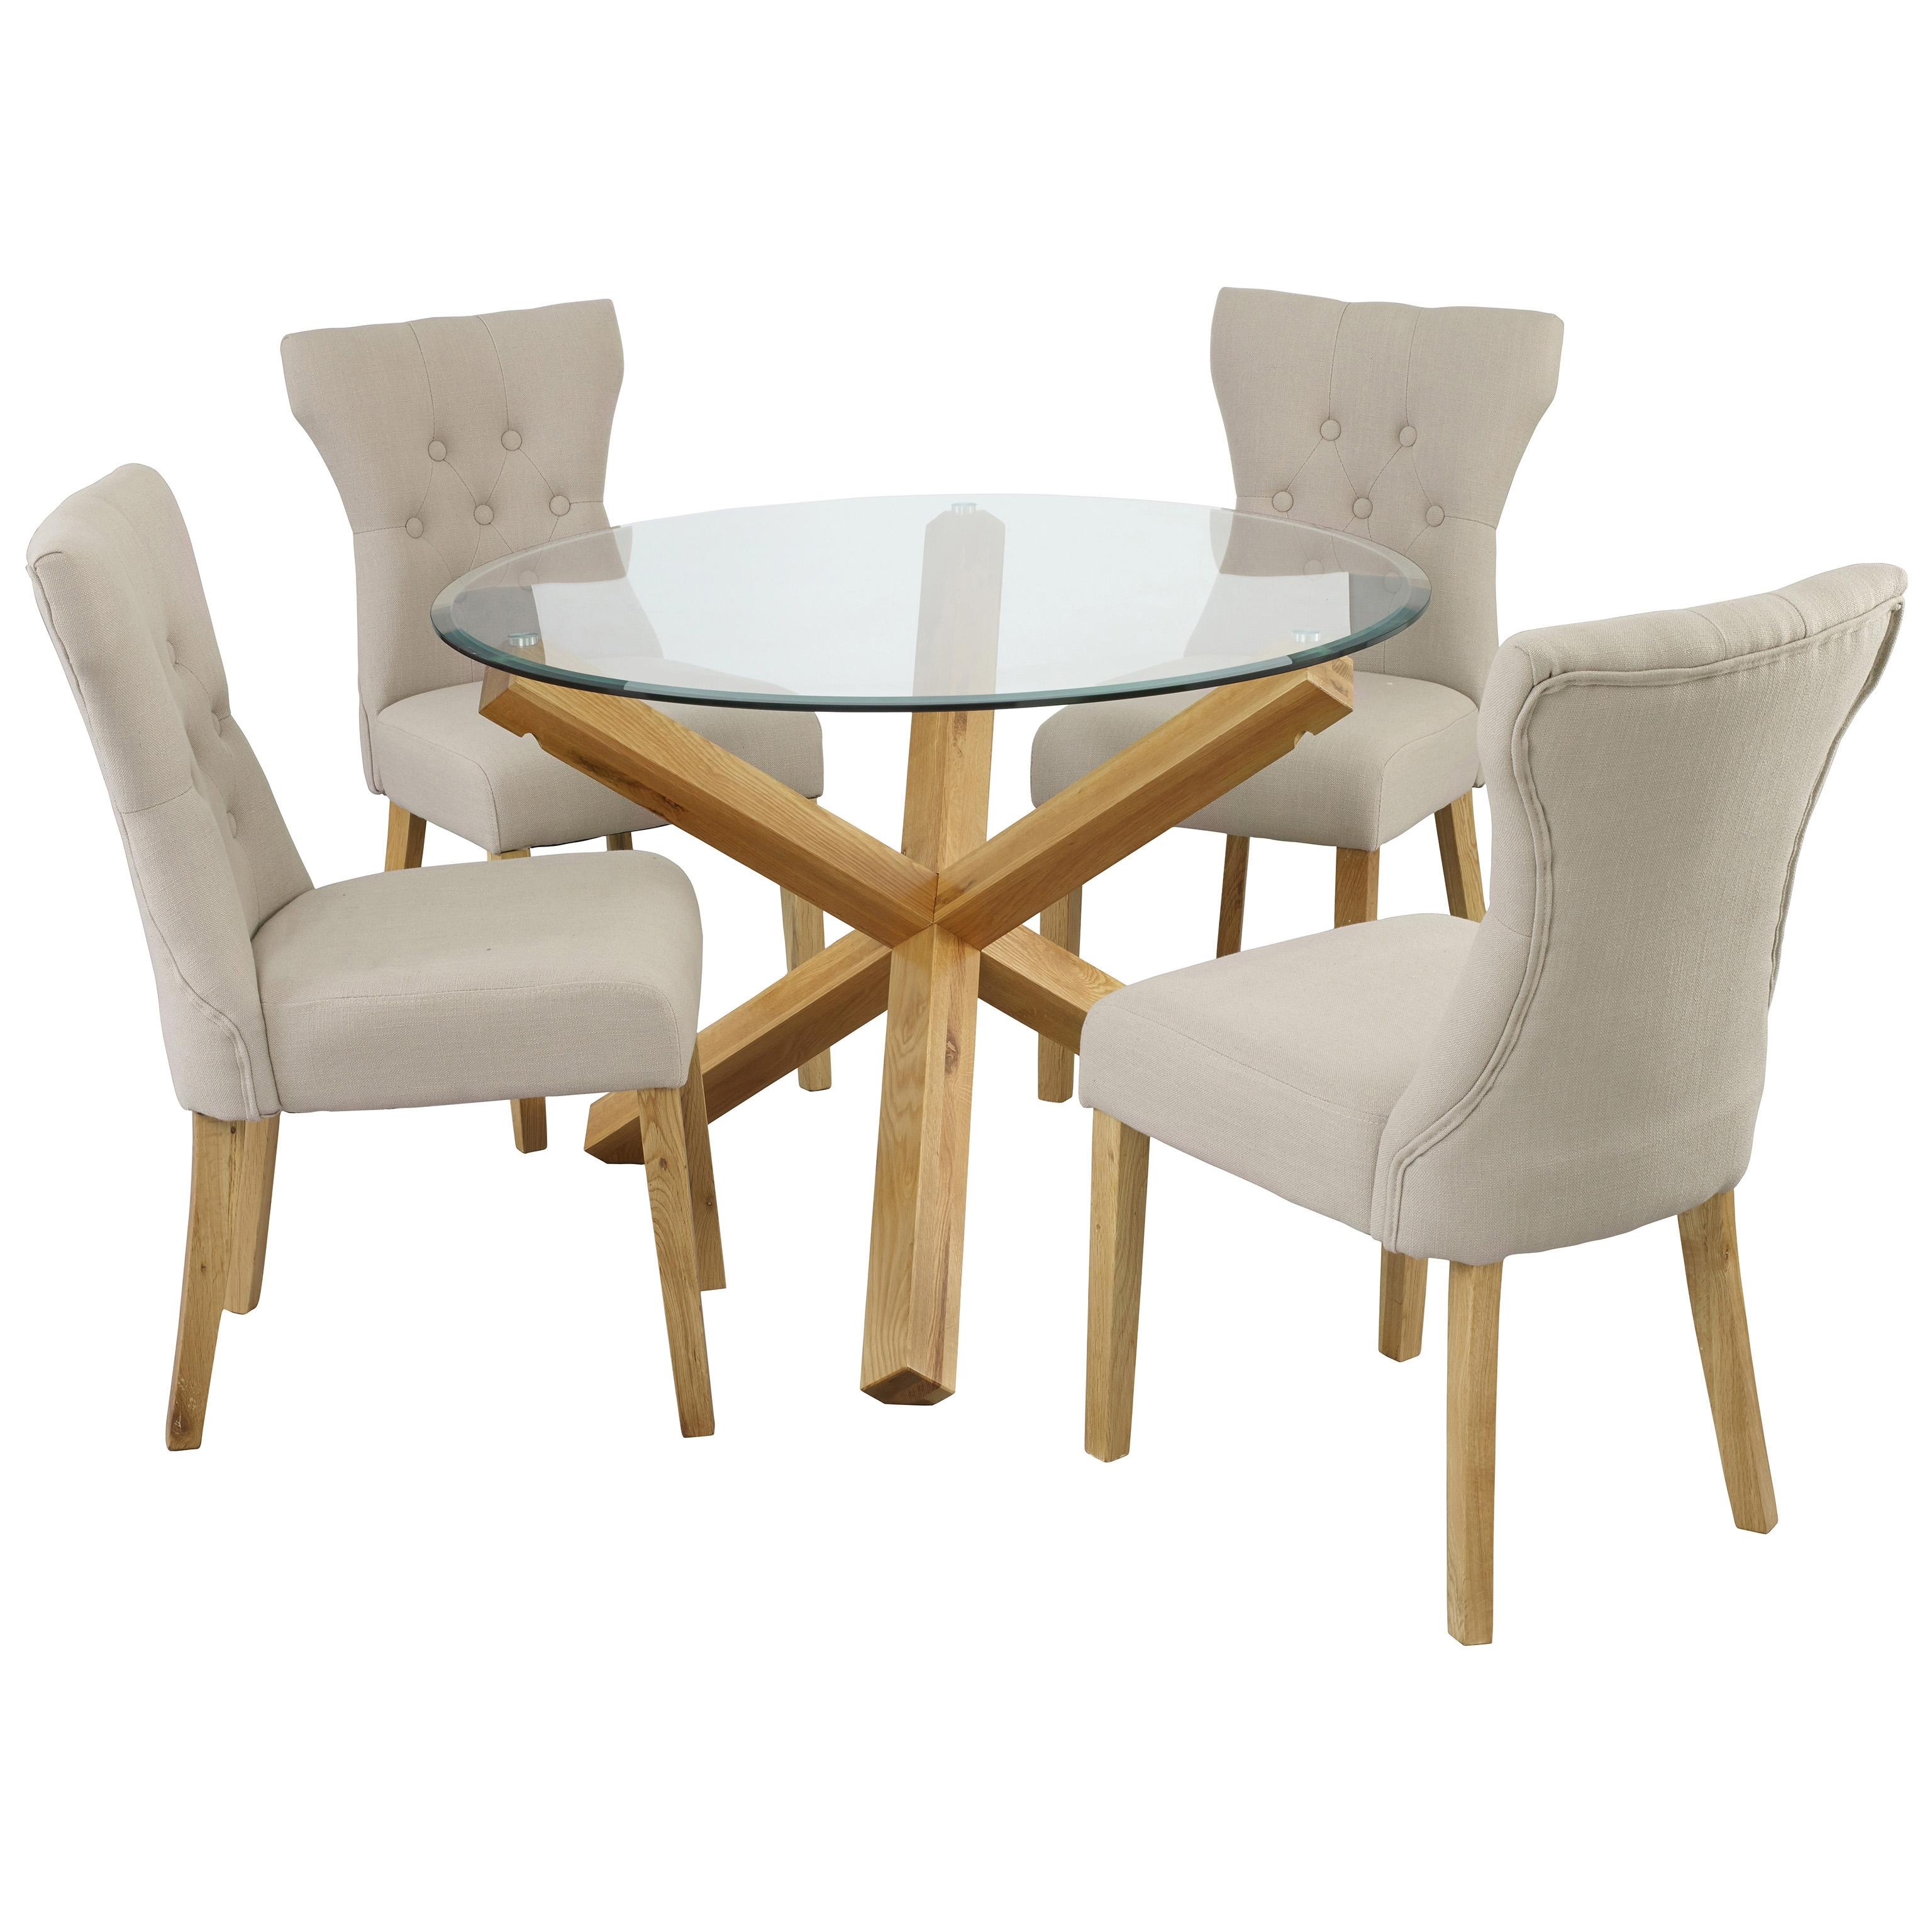 Oak & Glass Round Dining Table And Chair Set With 4 Fabric Seats Pertaining To Fashionable Oak Dining Tables With 6 Chairs (View 9 of 25)